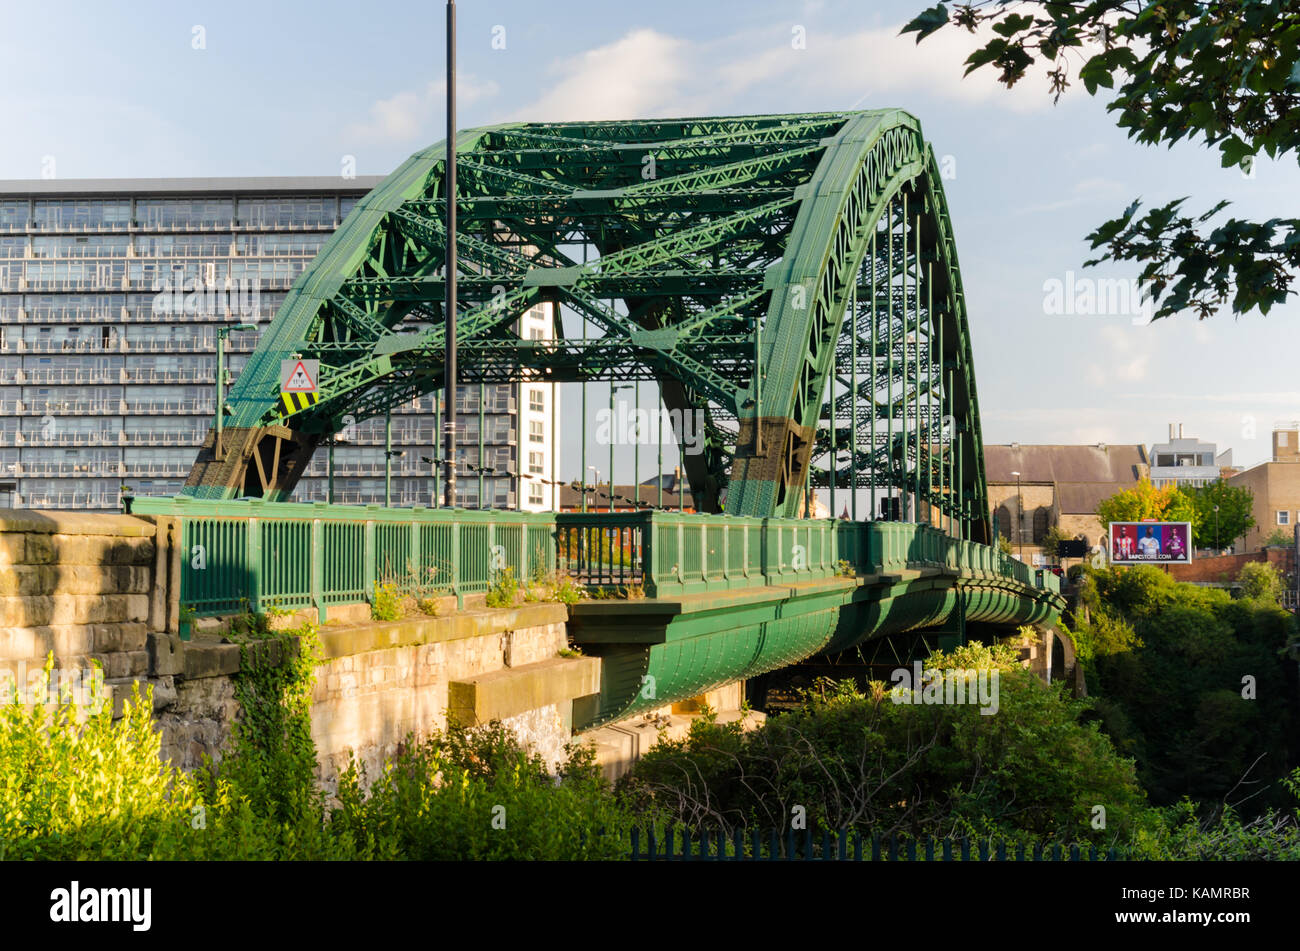 Wearmouth Bridge (1929), Sunderland. Grade II listed Bridge designed by Mott, Hay and Anderson and viewed from the - Stock Image